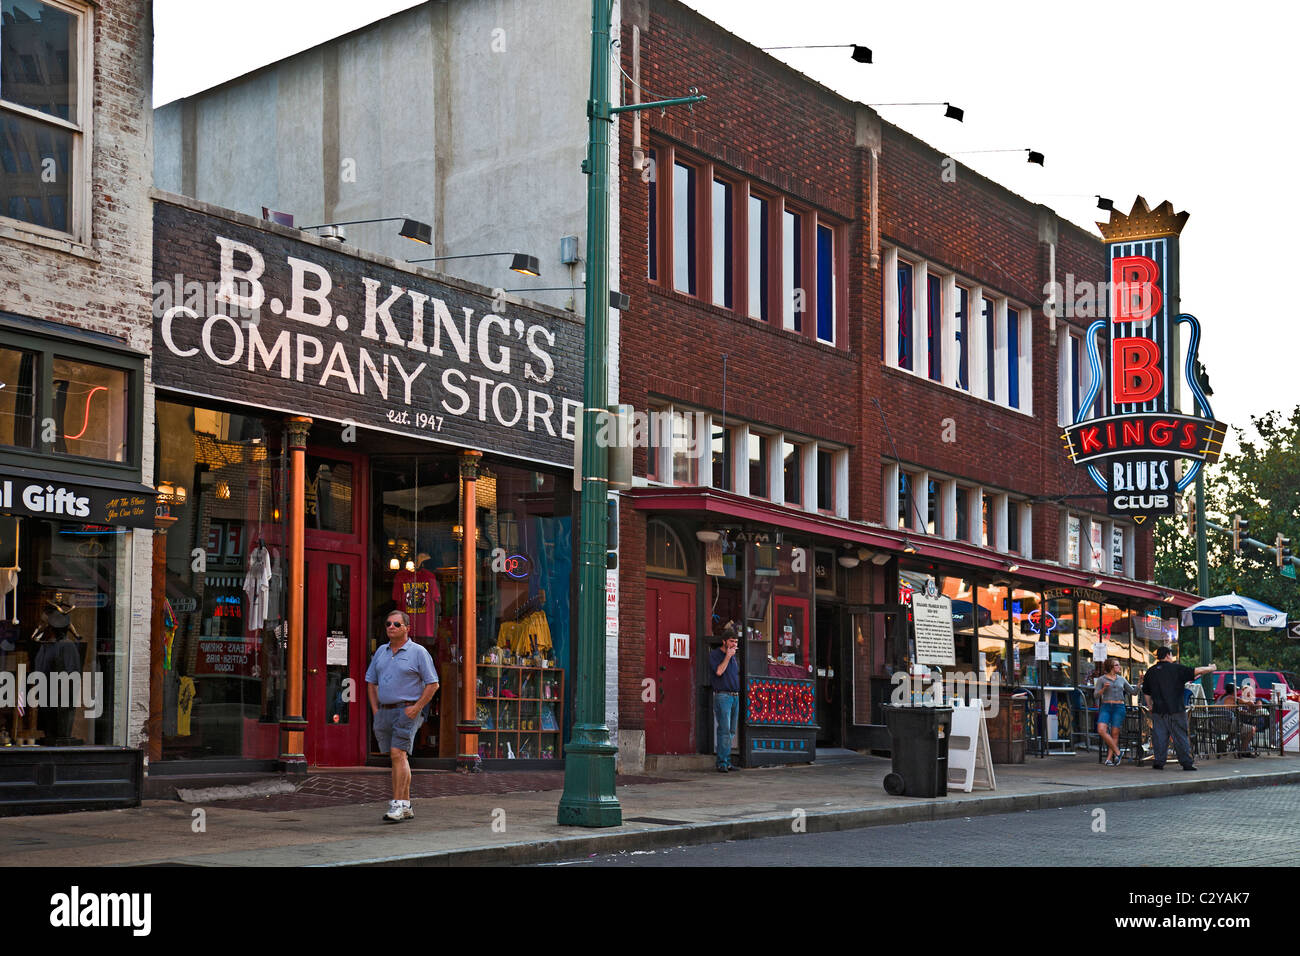 Beale Street, Memphis: BBKing's Company Store and Blues Club with pedestrians and pavement cafe - Stock Image